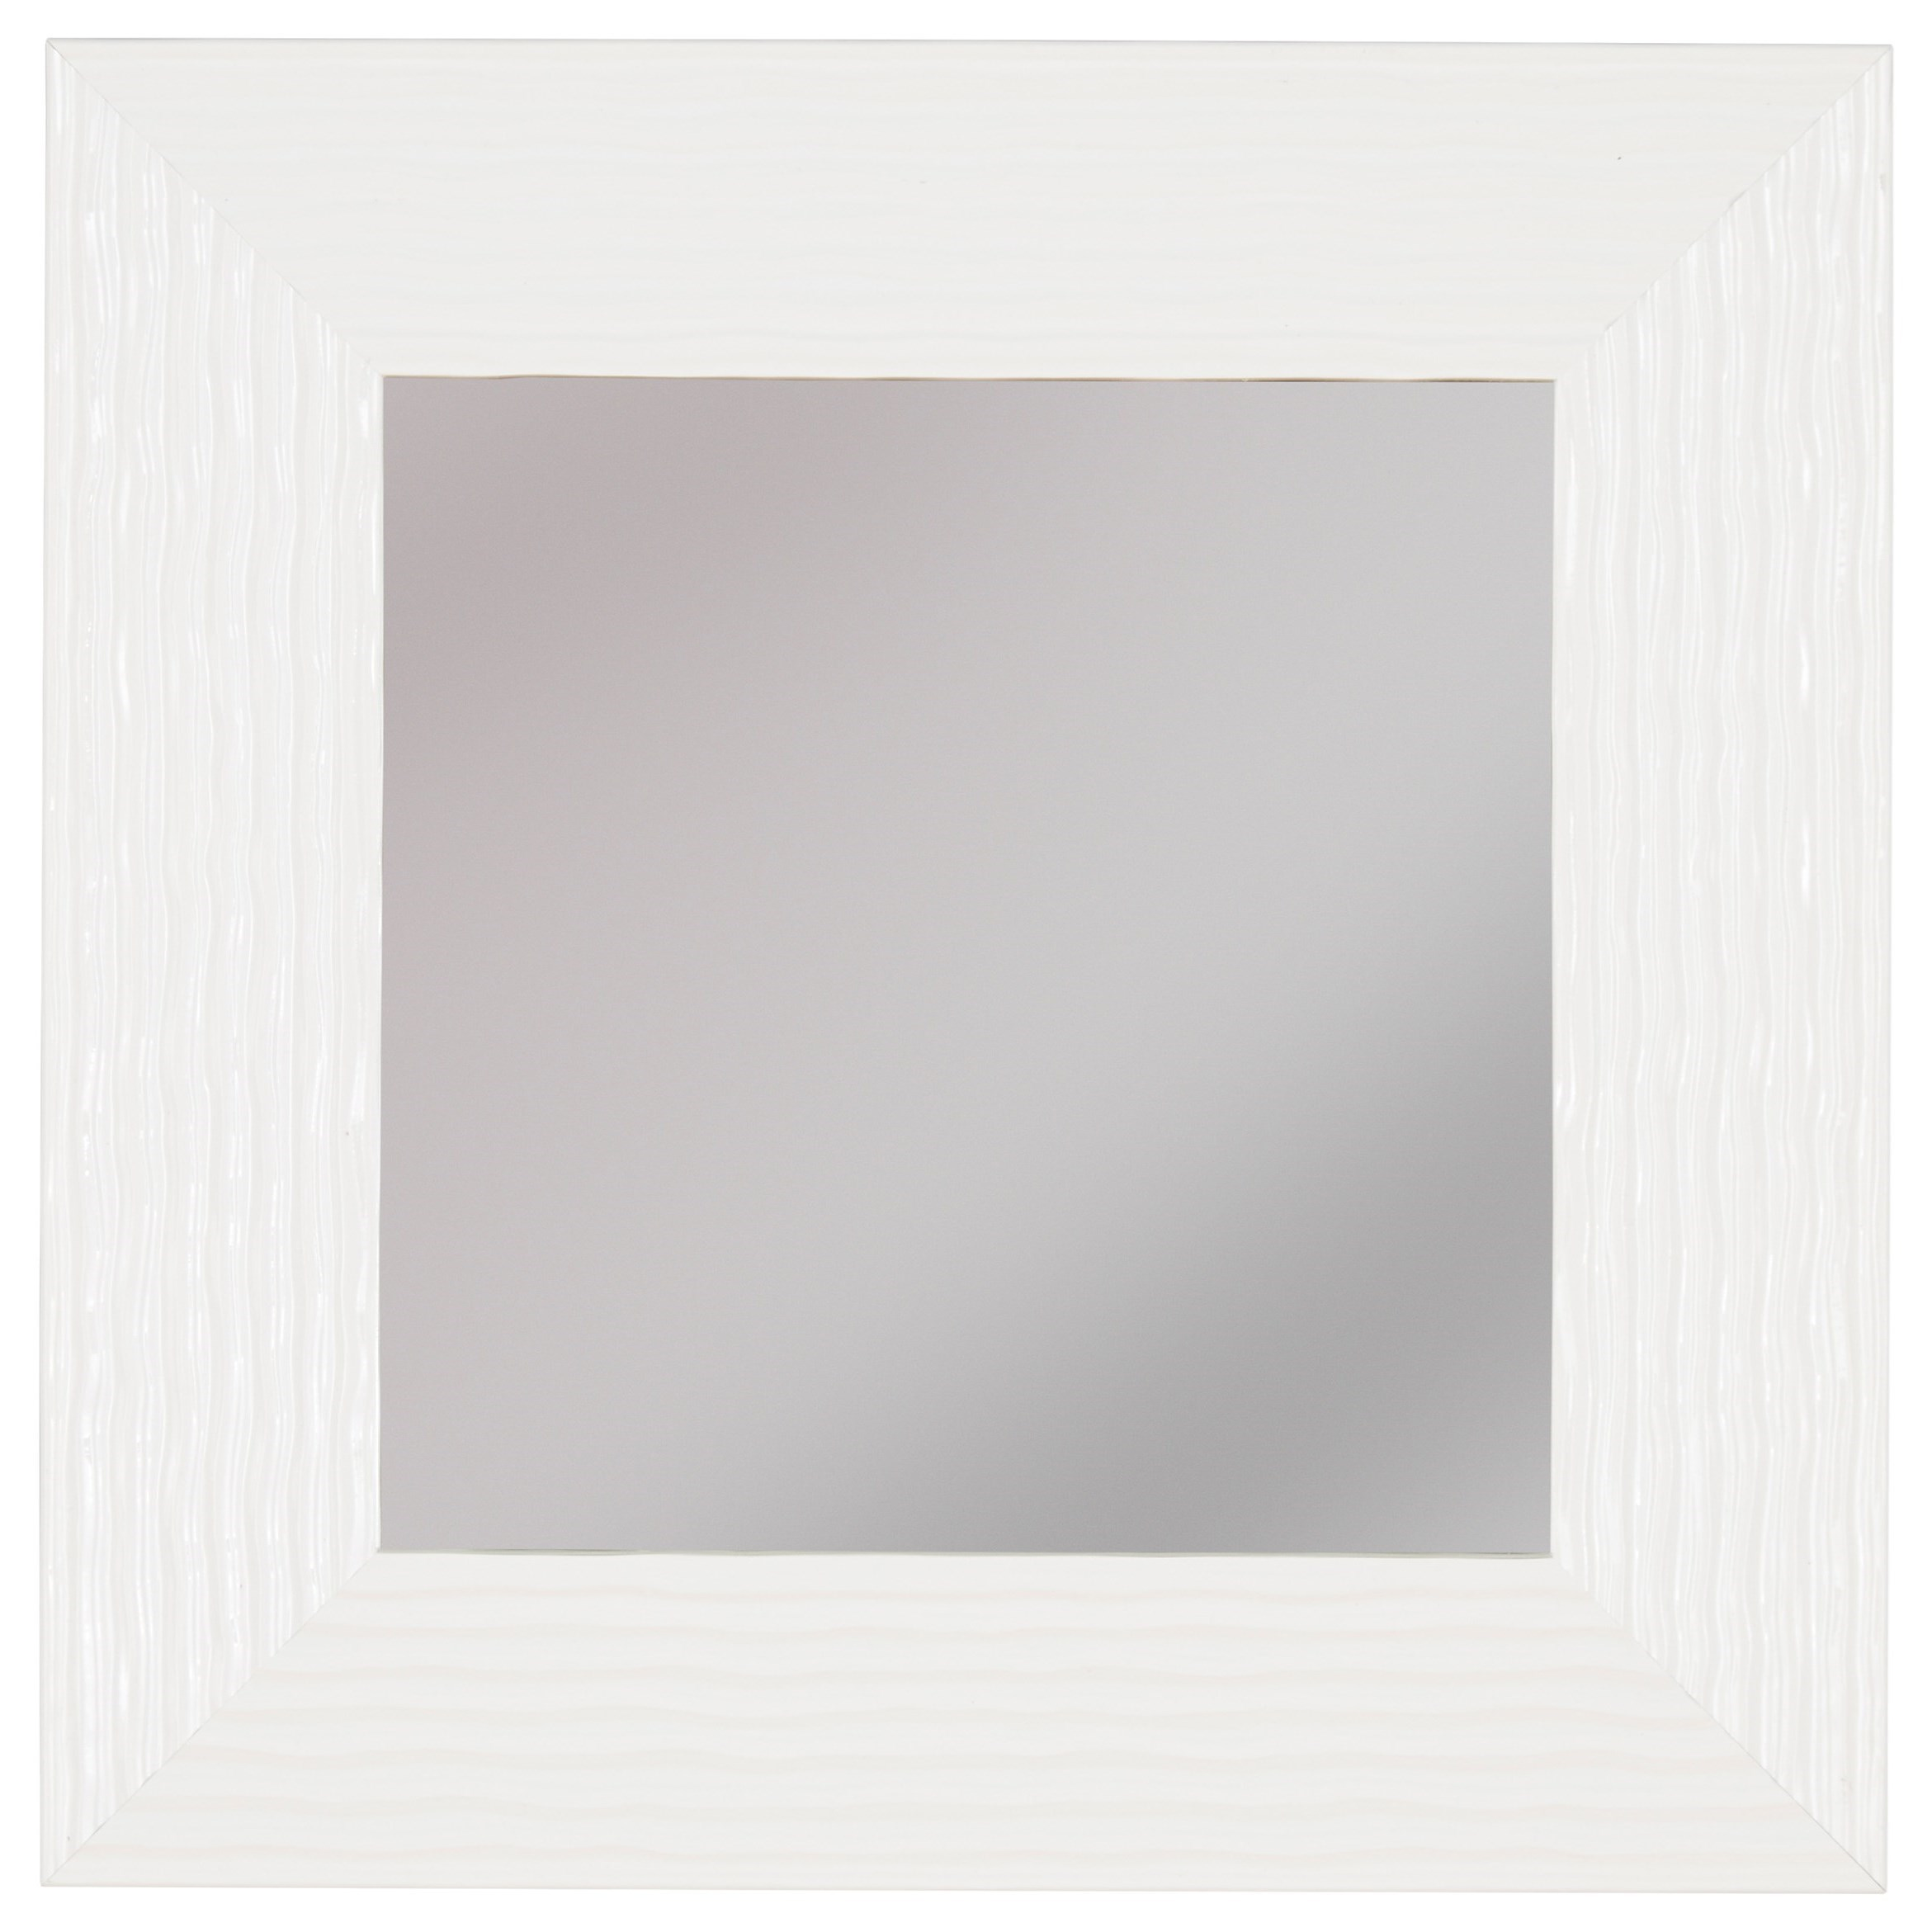 Signature Design by Ashley Accent Mirrors Odelyn White Wall Mirror - Item Number: A8010010